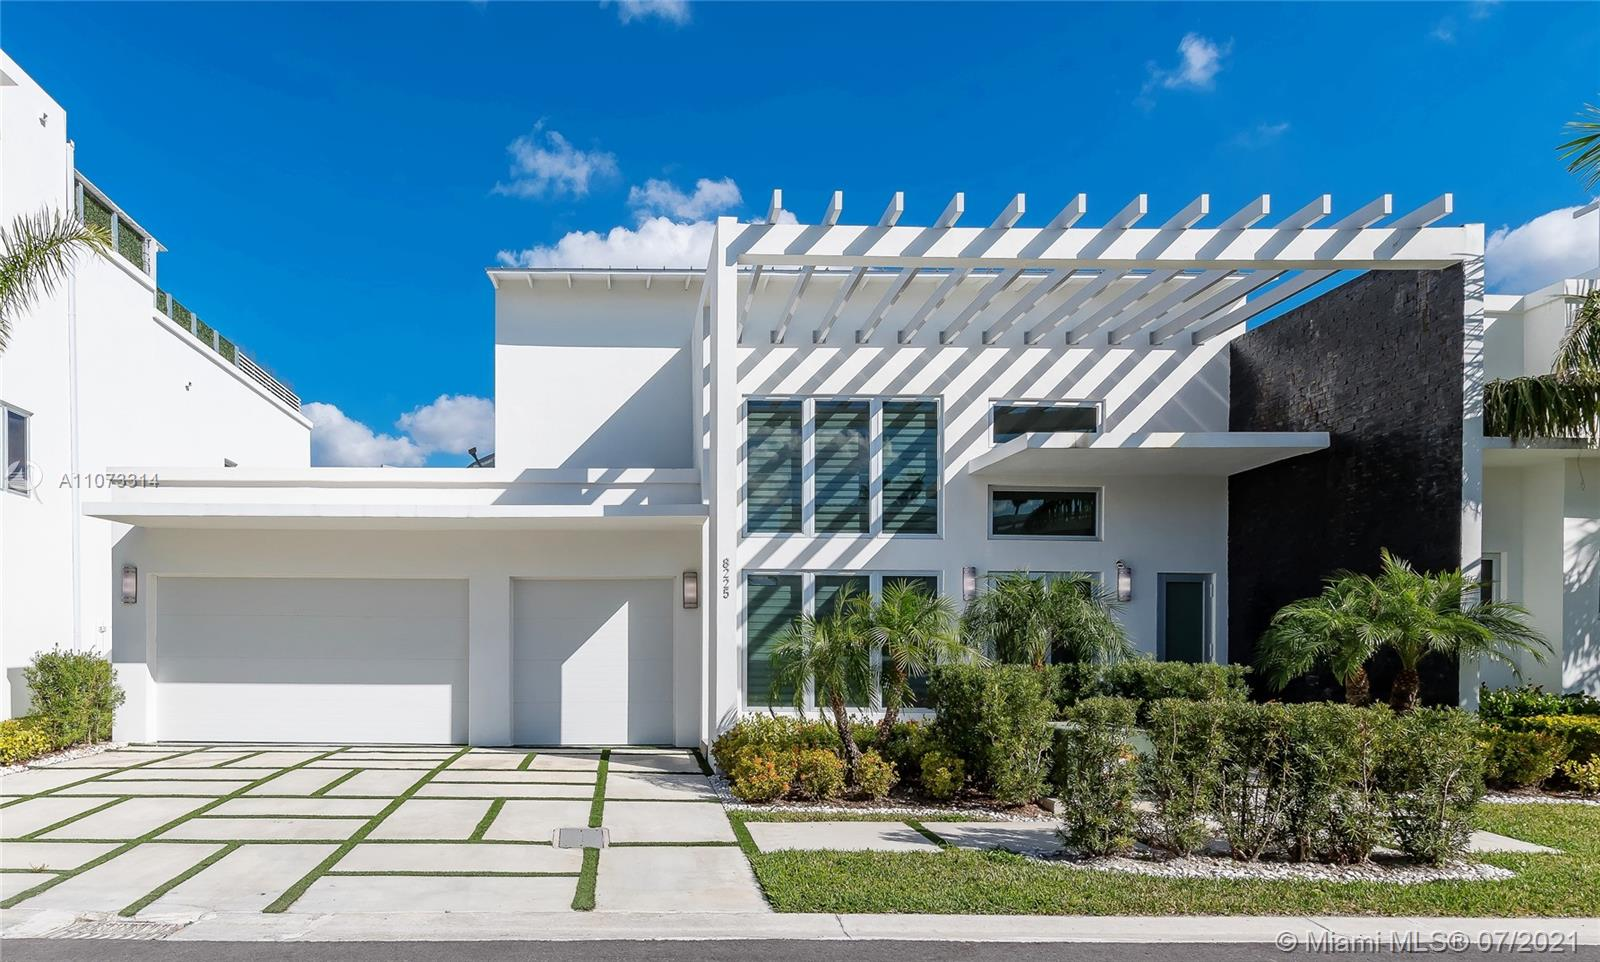 """Custom home in OASIS RESIDENCE Doral. Modern style, wide living spaces, contemporary details and state-of-the-art technology. The best floor plan in the neighborhood featuring: high ceilings, Oversized Master Bedroom, Italian wood cabinetry, marble floors, outdoor kitchen, glass wine cedar & delivered """"Smart Home"""" ready. Luxury gated community next to Doral City Place with fine dining, shopping and more. TENANT OCCUPIED UNTIL 09/22."""